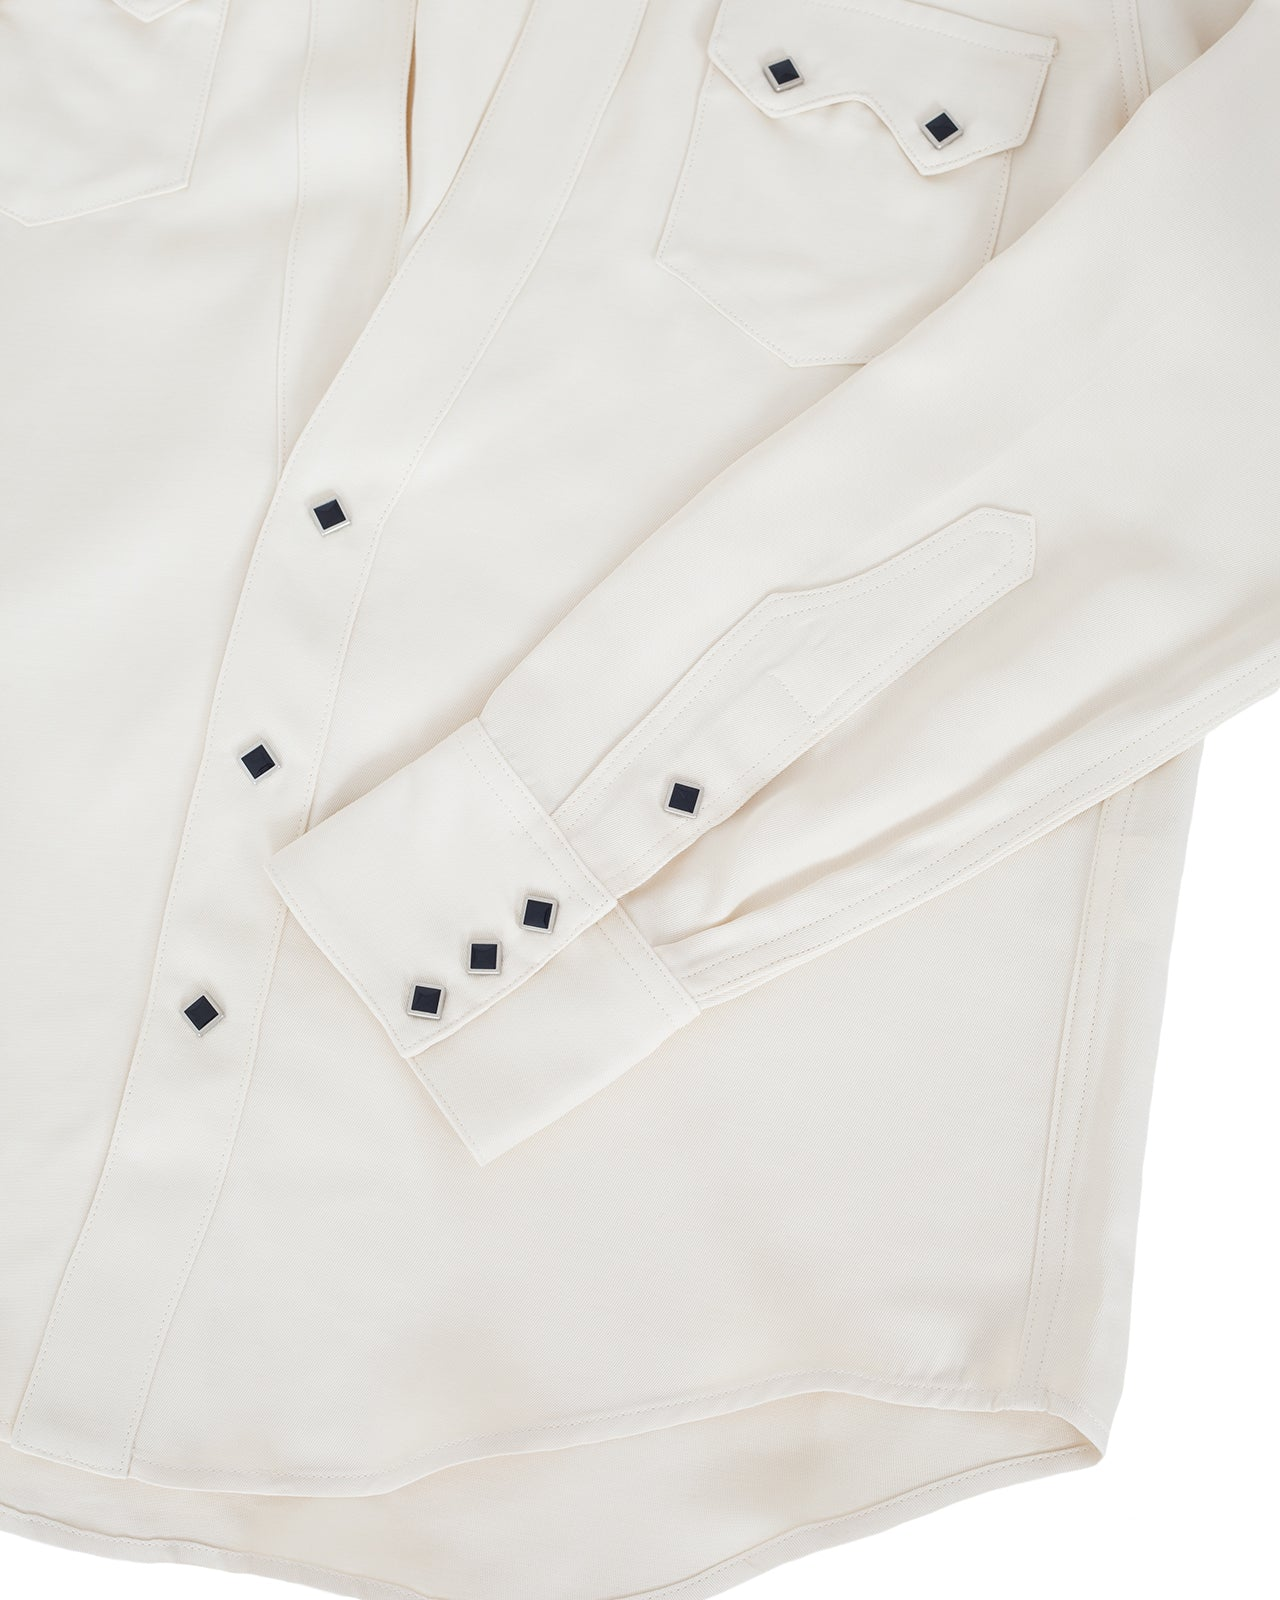 The Letters Western Cutting Shirt, Rayon Twill